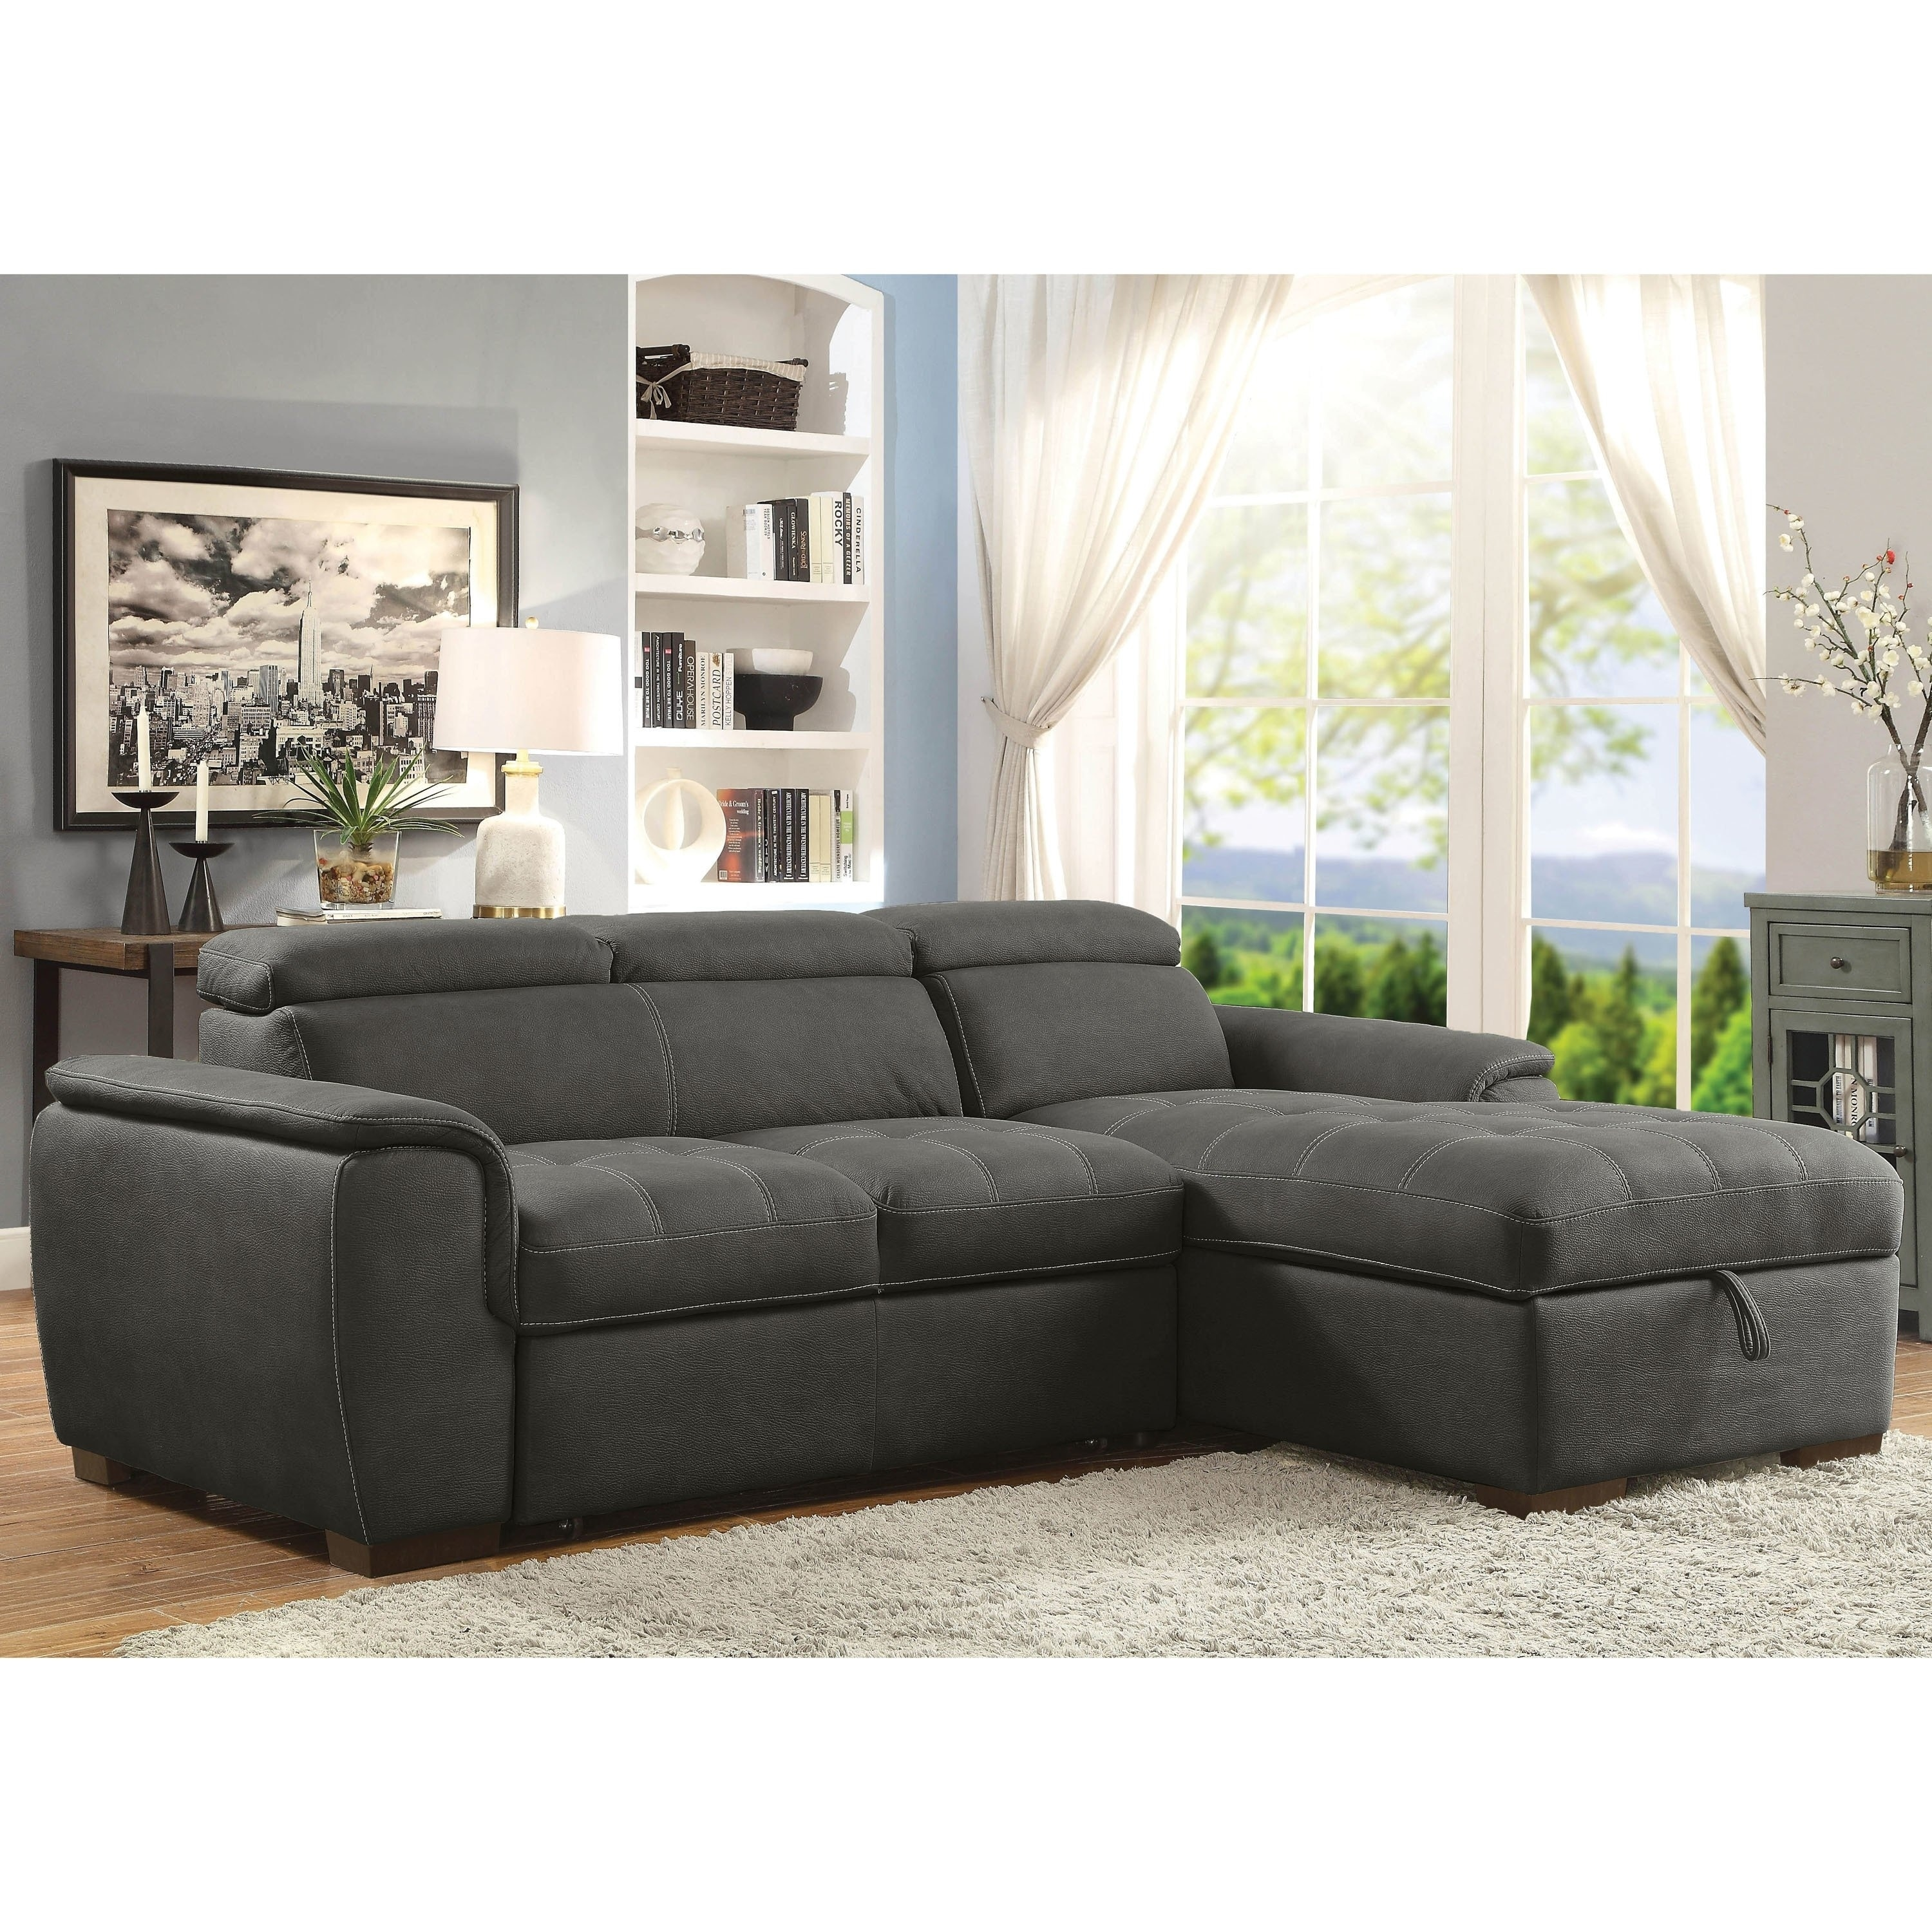 Furniture of America Nerg Contemporary Faux Nubuck Sleeper Sectional